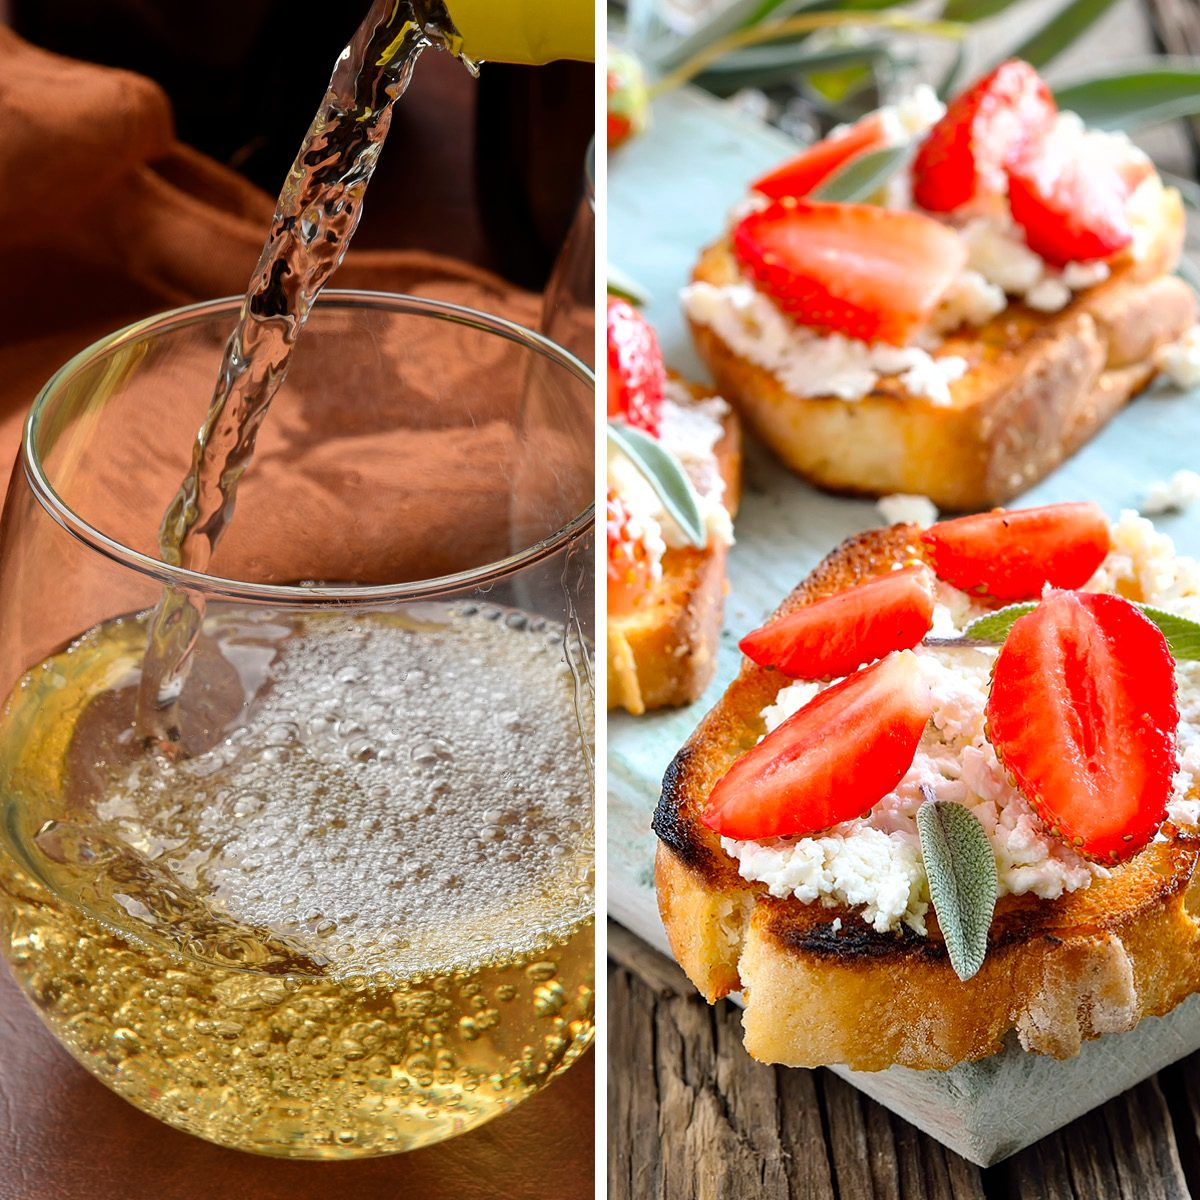 Crostini with goat cheese and strawberries; Shutterstock ID 224241787; Job (TFH, TOH, RD, BNB, CWM, CM): TOH Pouring white wine into a glass, high speed photography, focus on pour; Shutterstock ID 367944608; Job (TFH, TOH, RD, BNB, CWM, CM): TOH